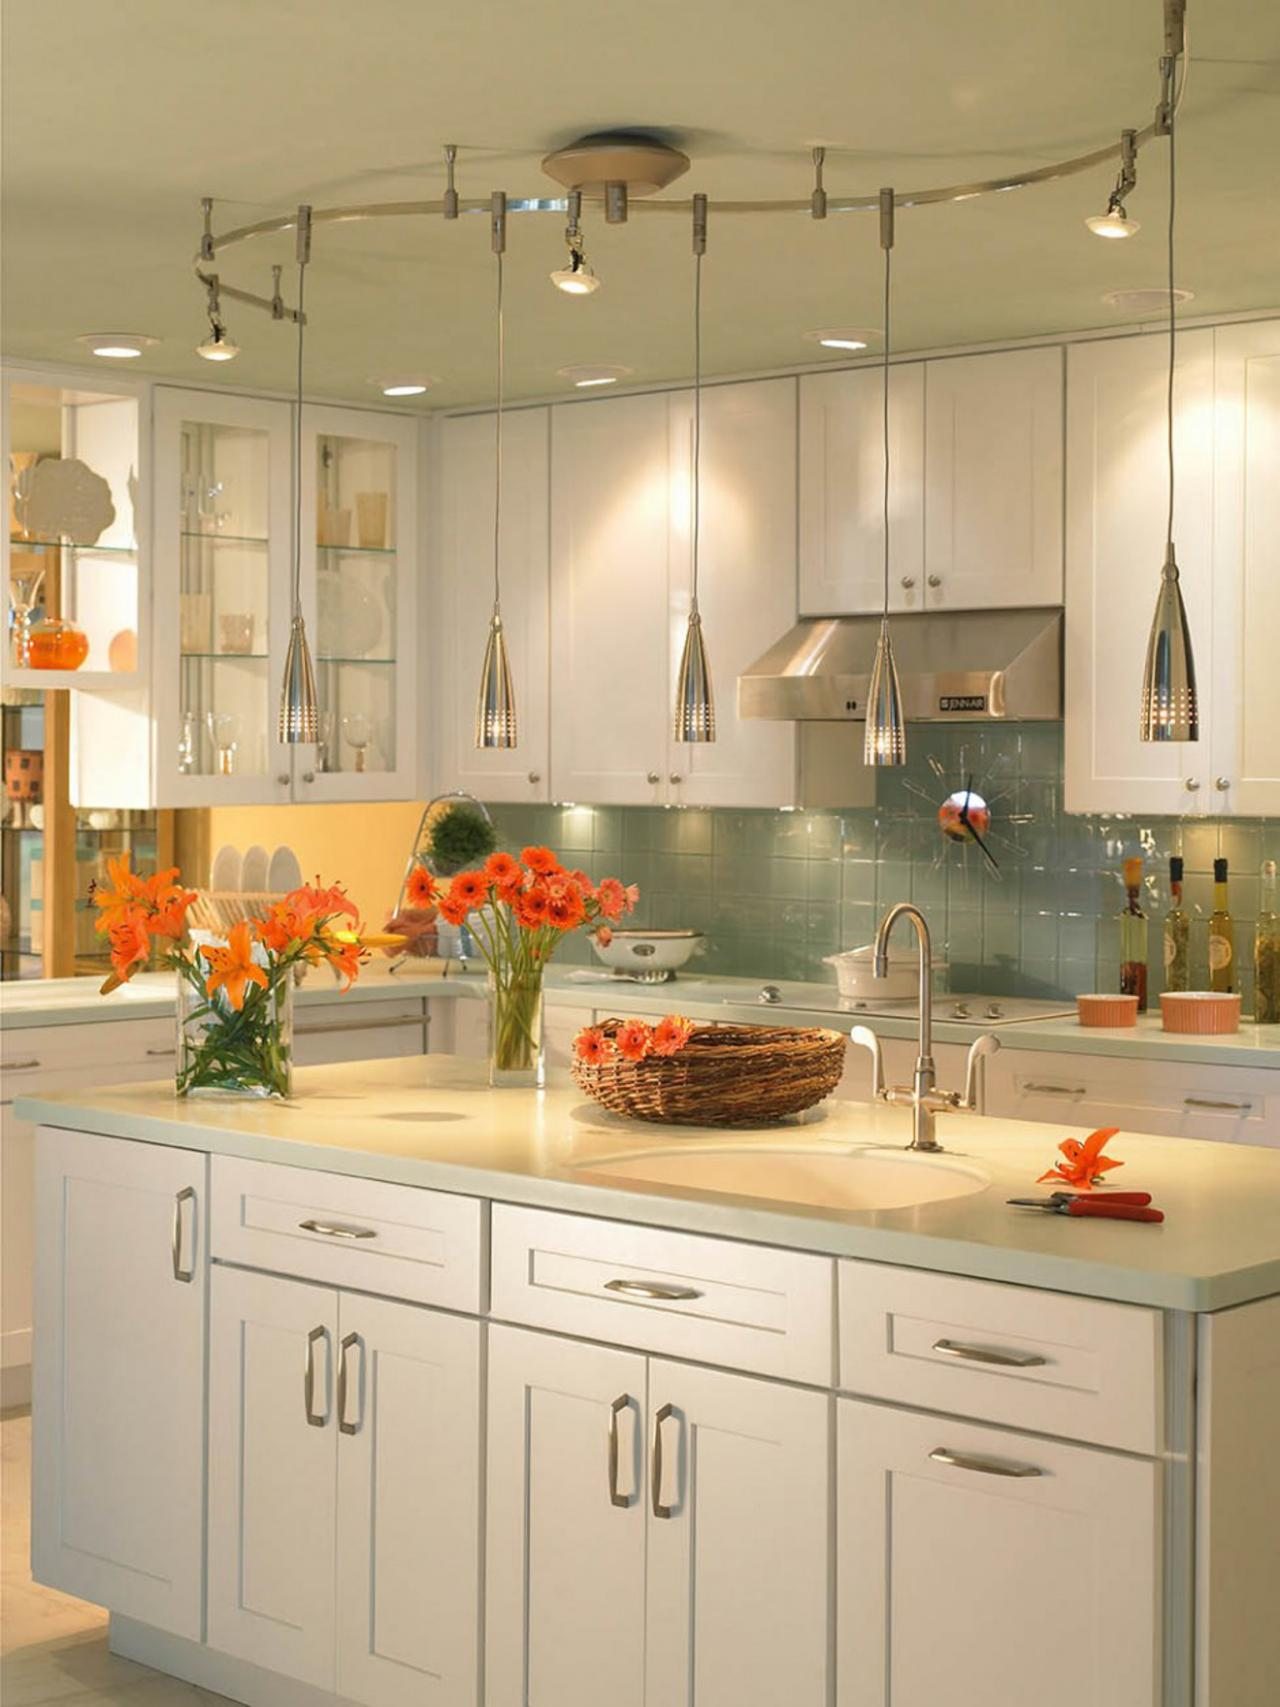 Light Fixture Kitchen Kitchen Lighting Design Tips Diy